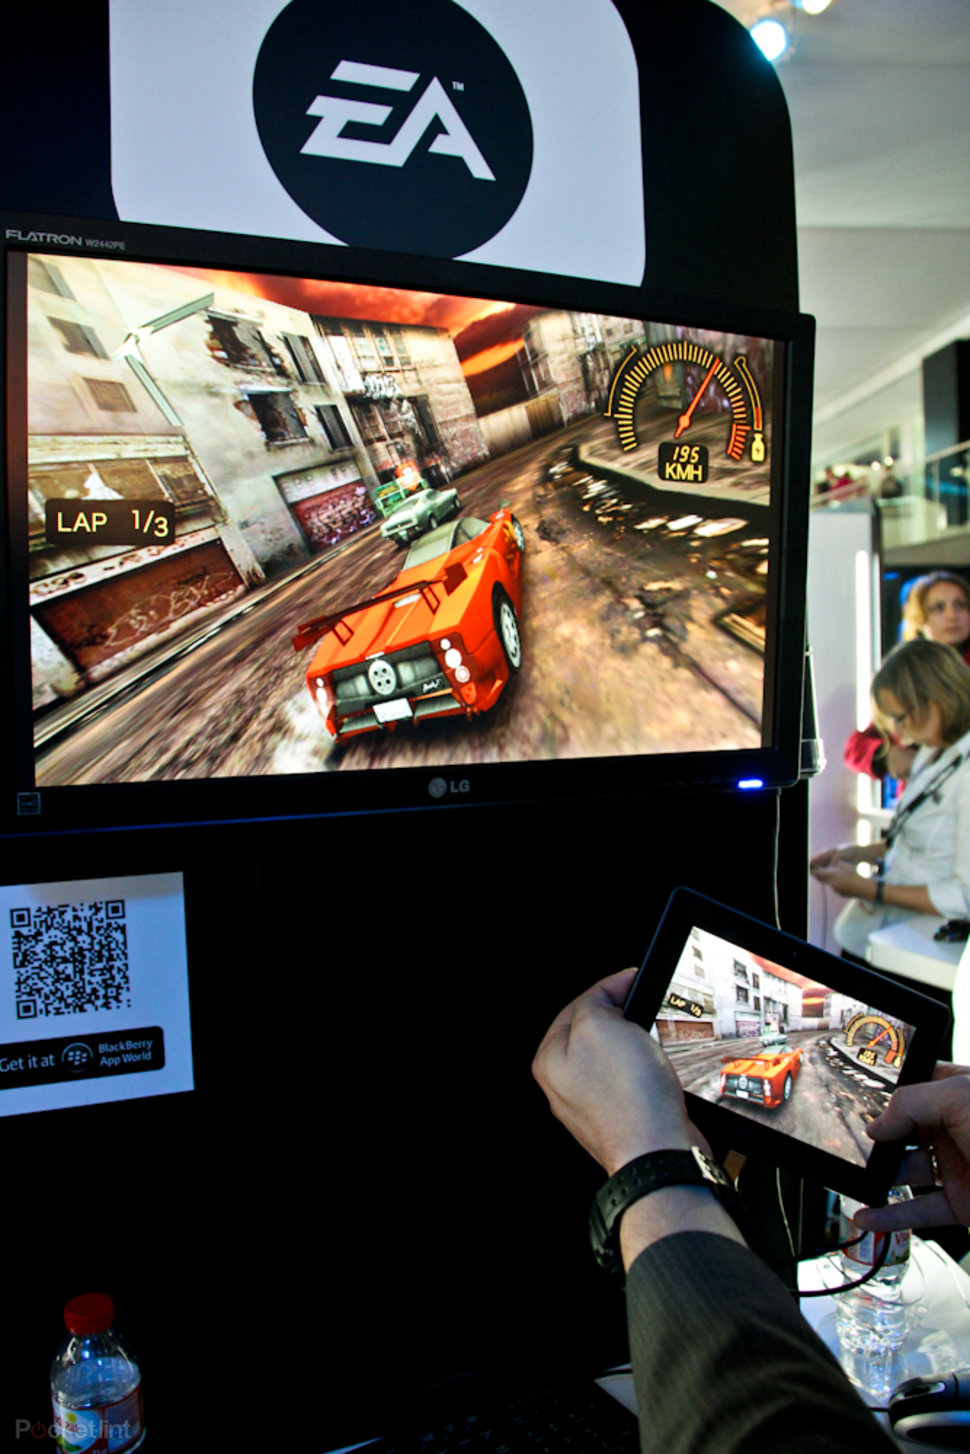 EA Need for Speed Underground on BlackBerry Playbook hands-on -